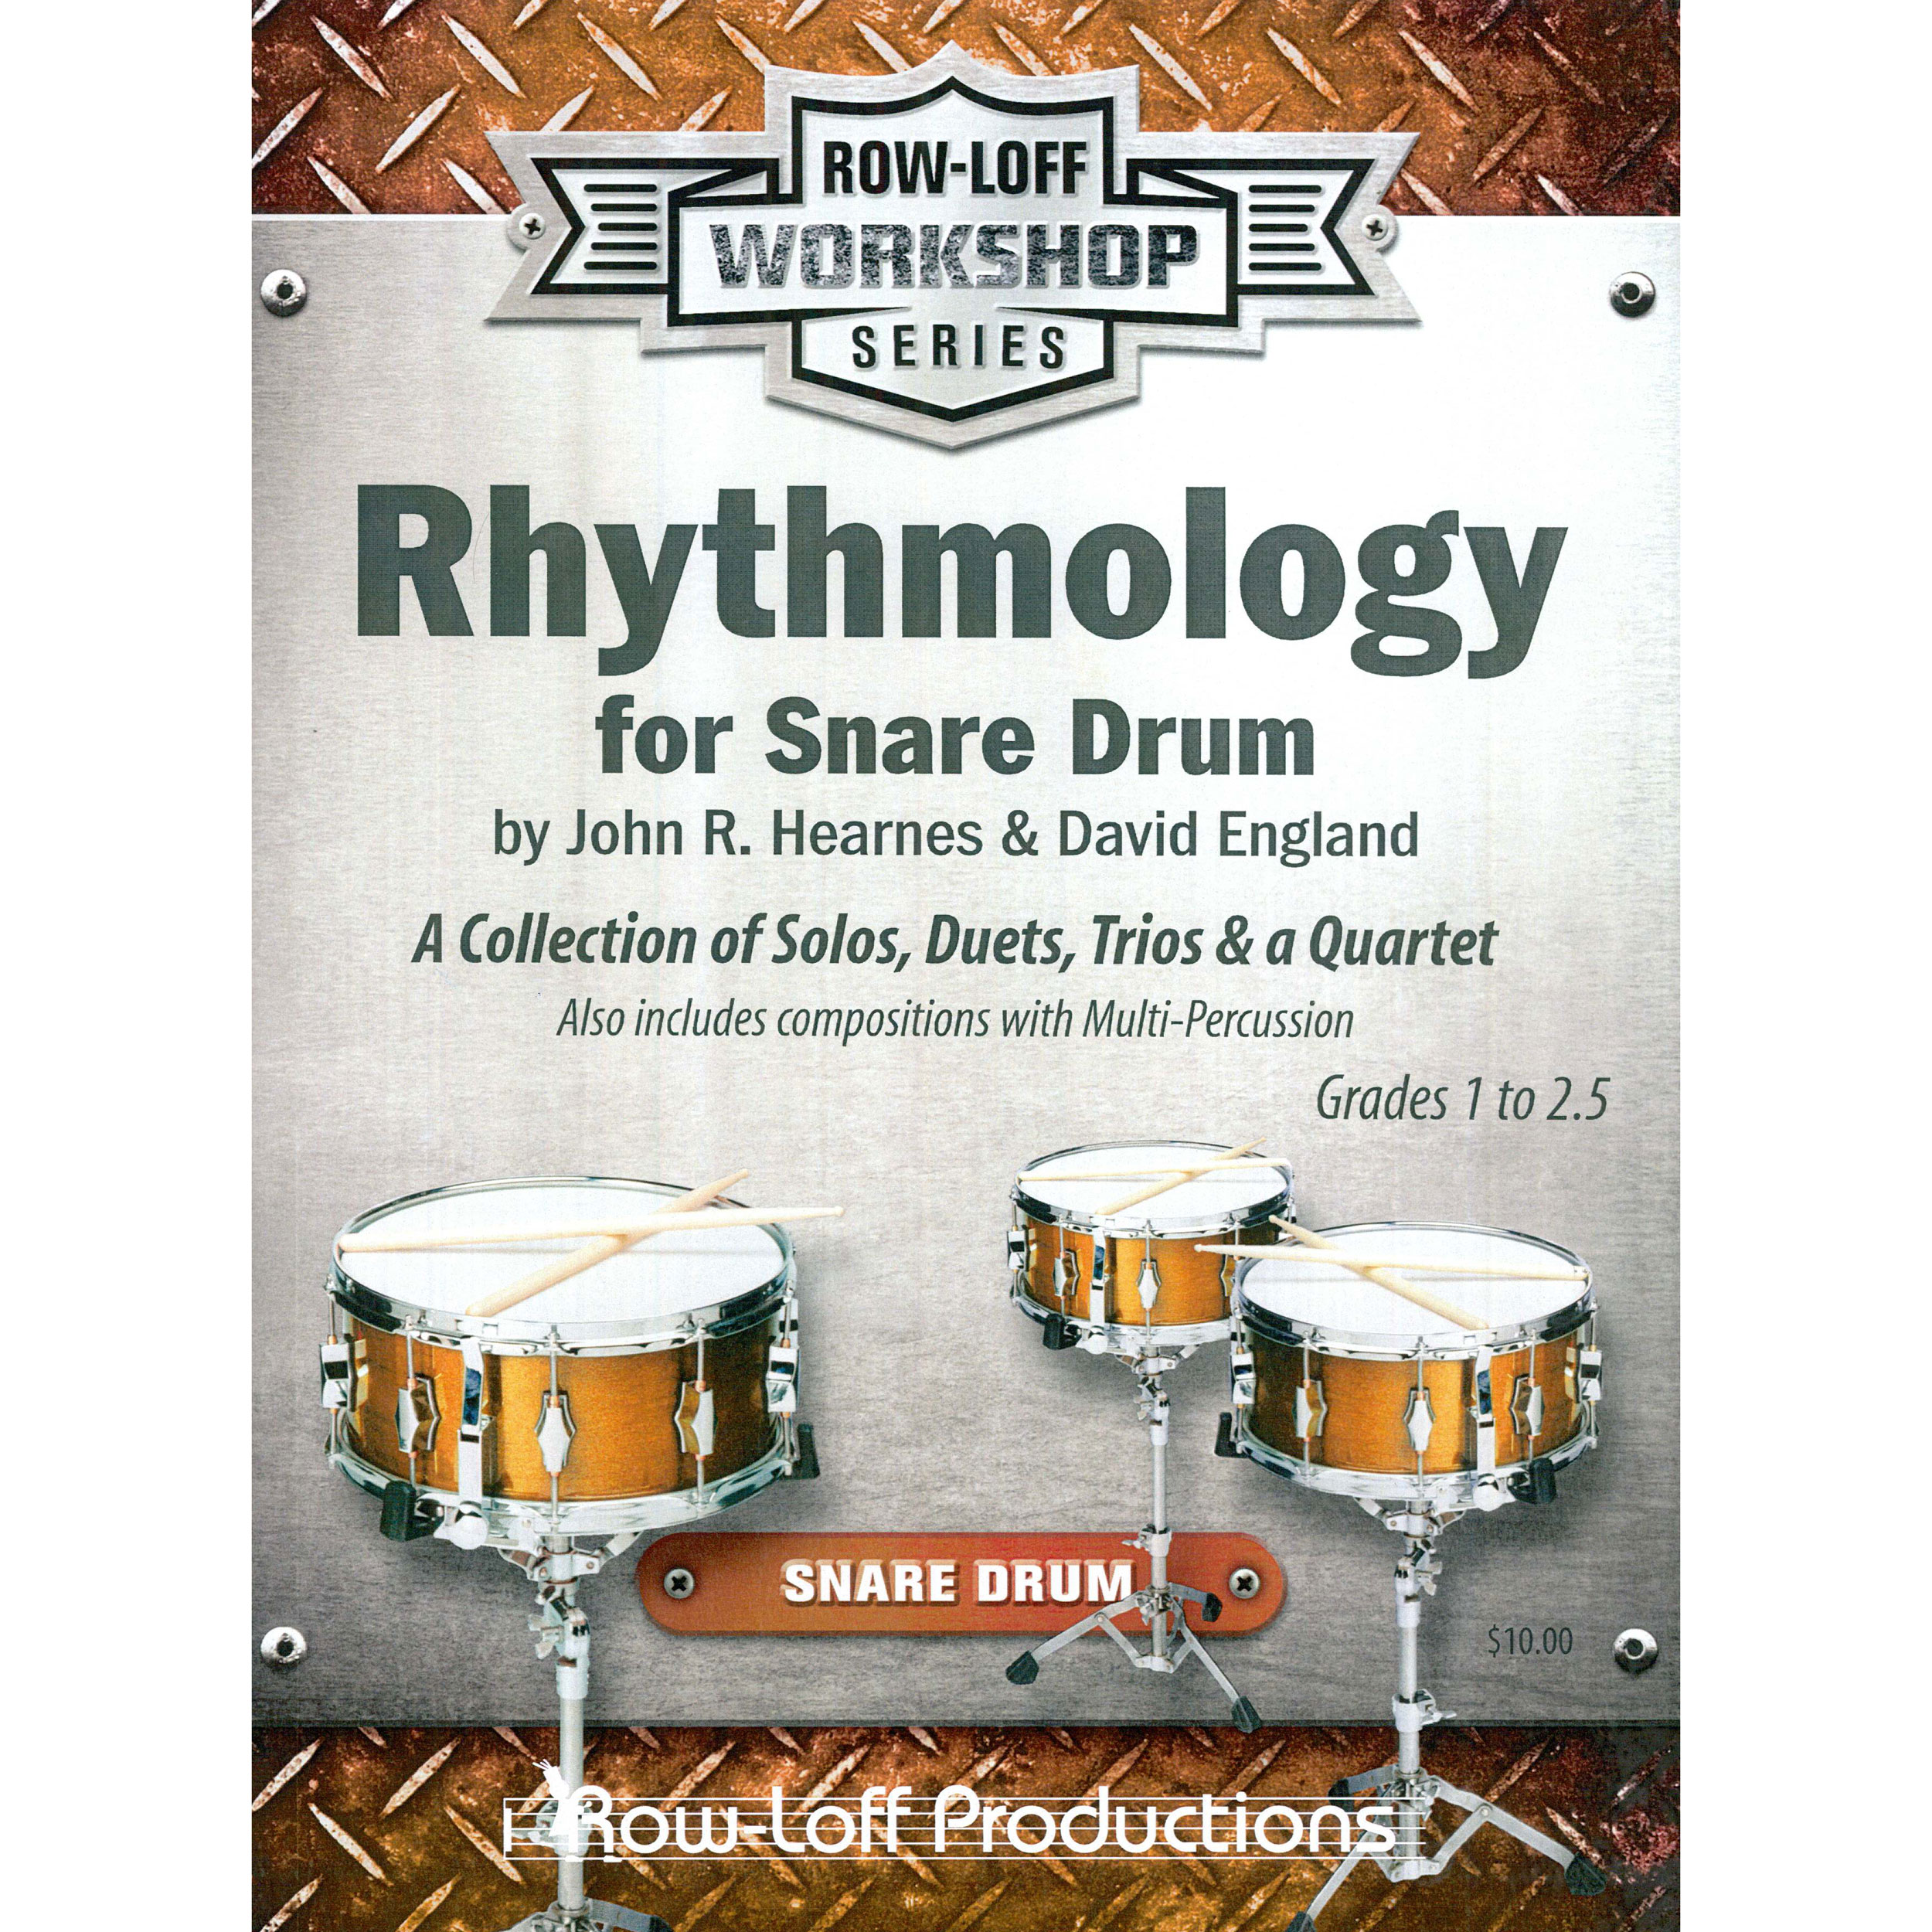 Rhythmology for Snare Drum by John Hearnes and David England